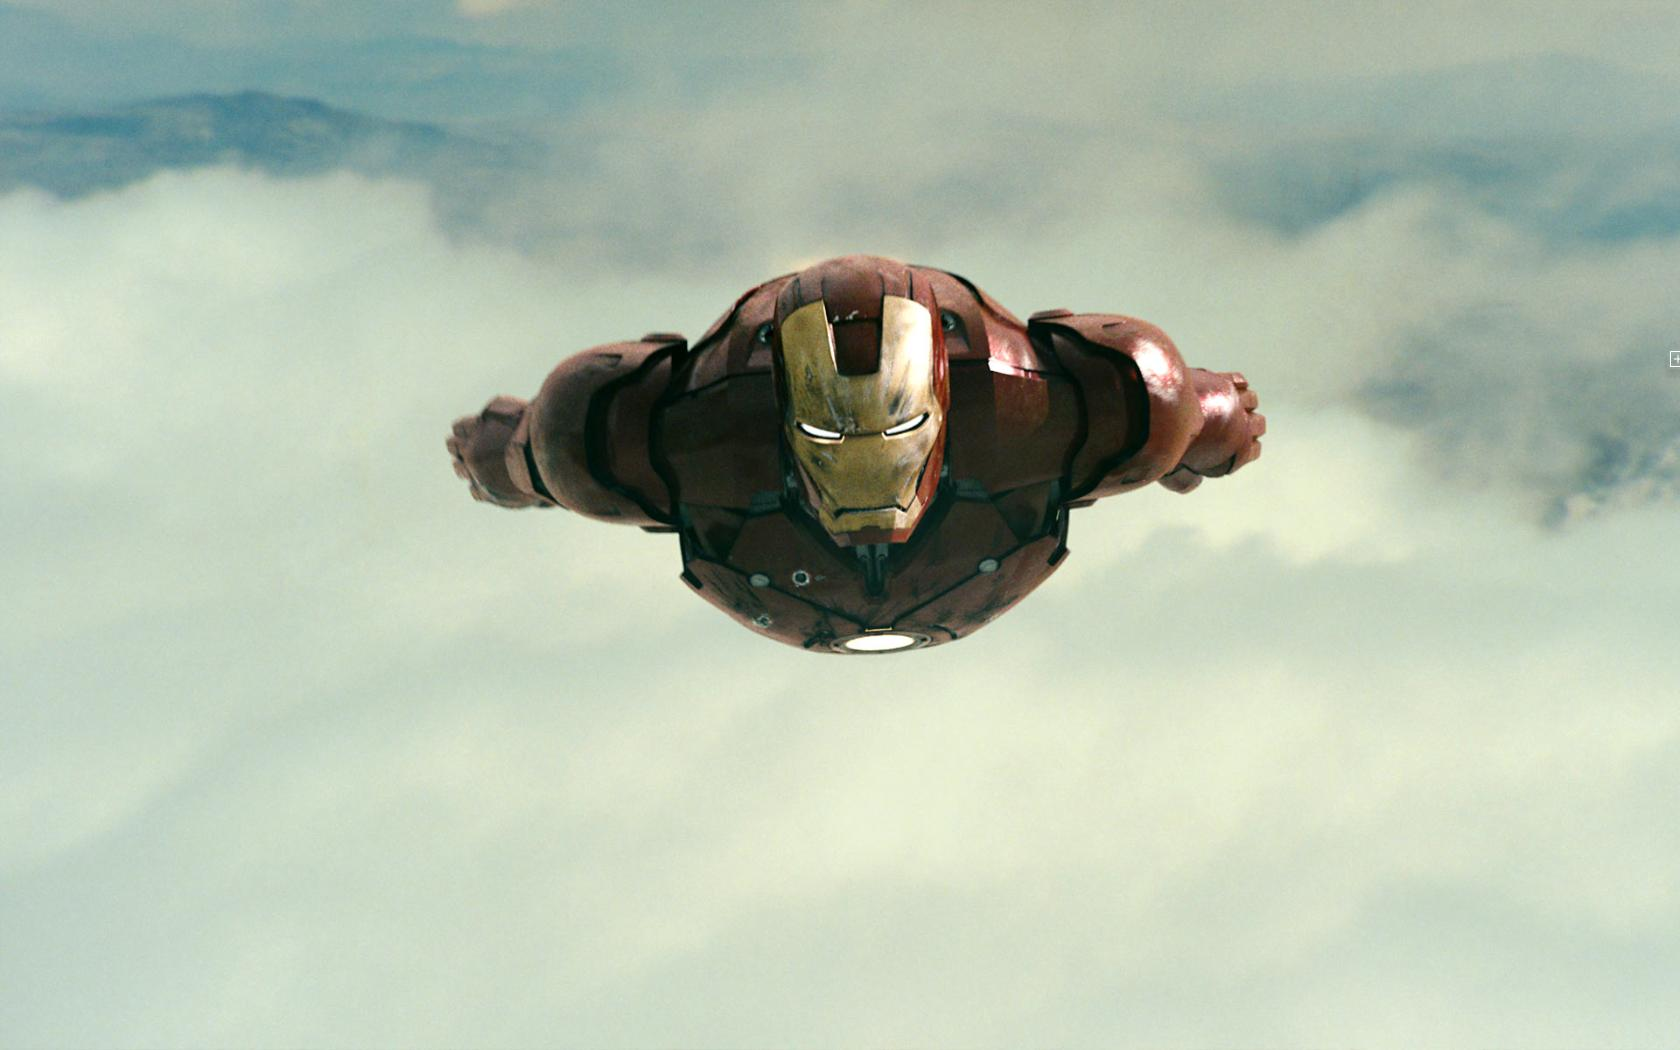 iron man 3 hd wallpapers 1920x1080